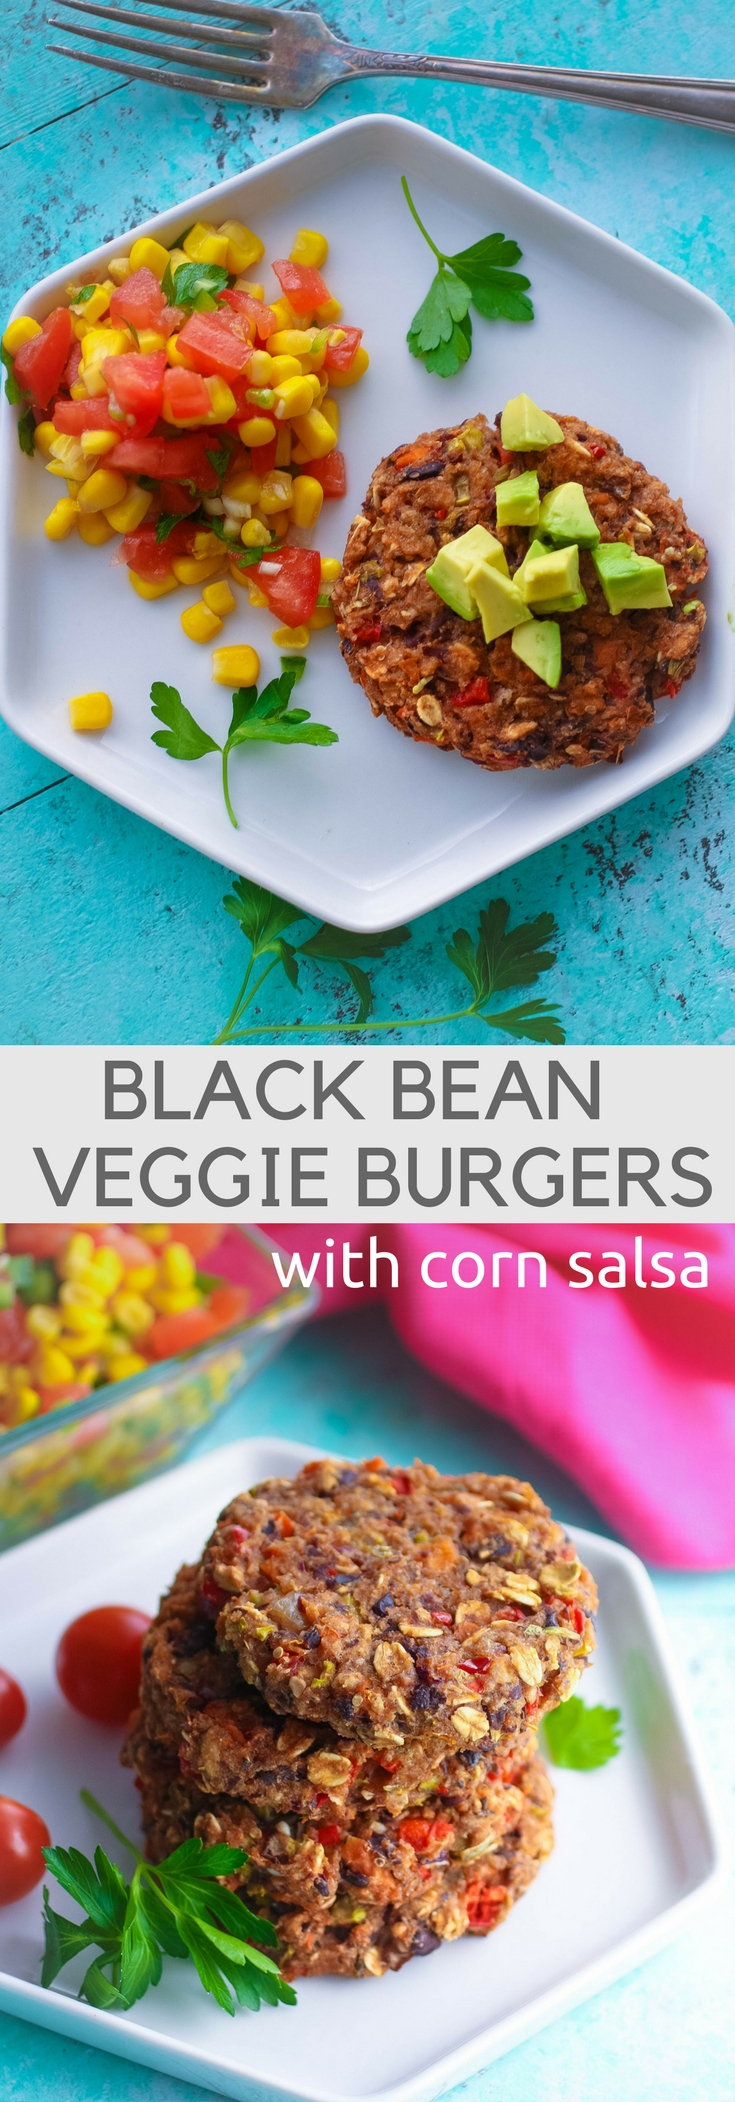 Whether you want a meatless meal or not, Black Bean Veggie Burgers with Corn Salsa are delicious! You'll enjoy Black Bean Veggie Burgers with Corn Salsa.